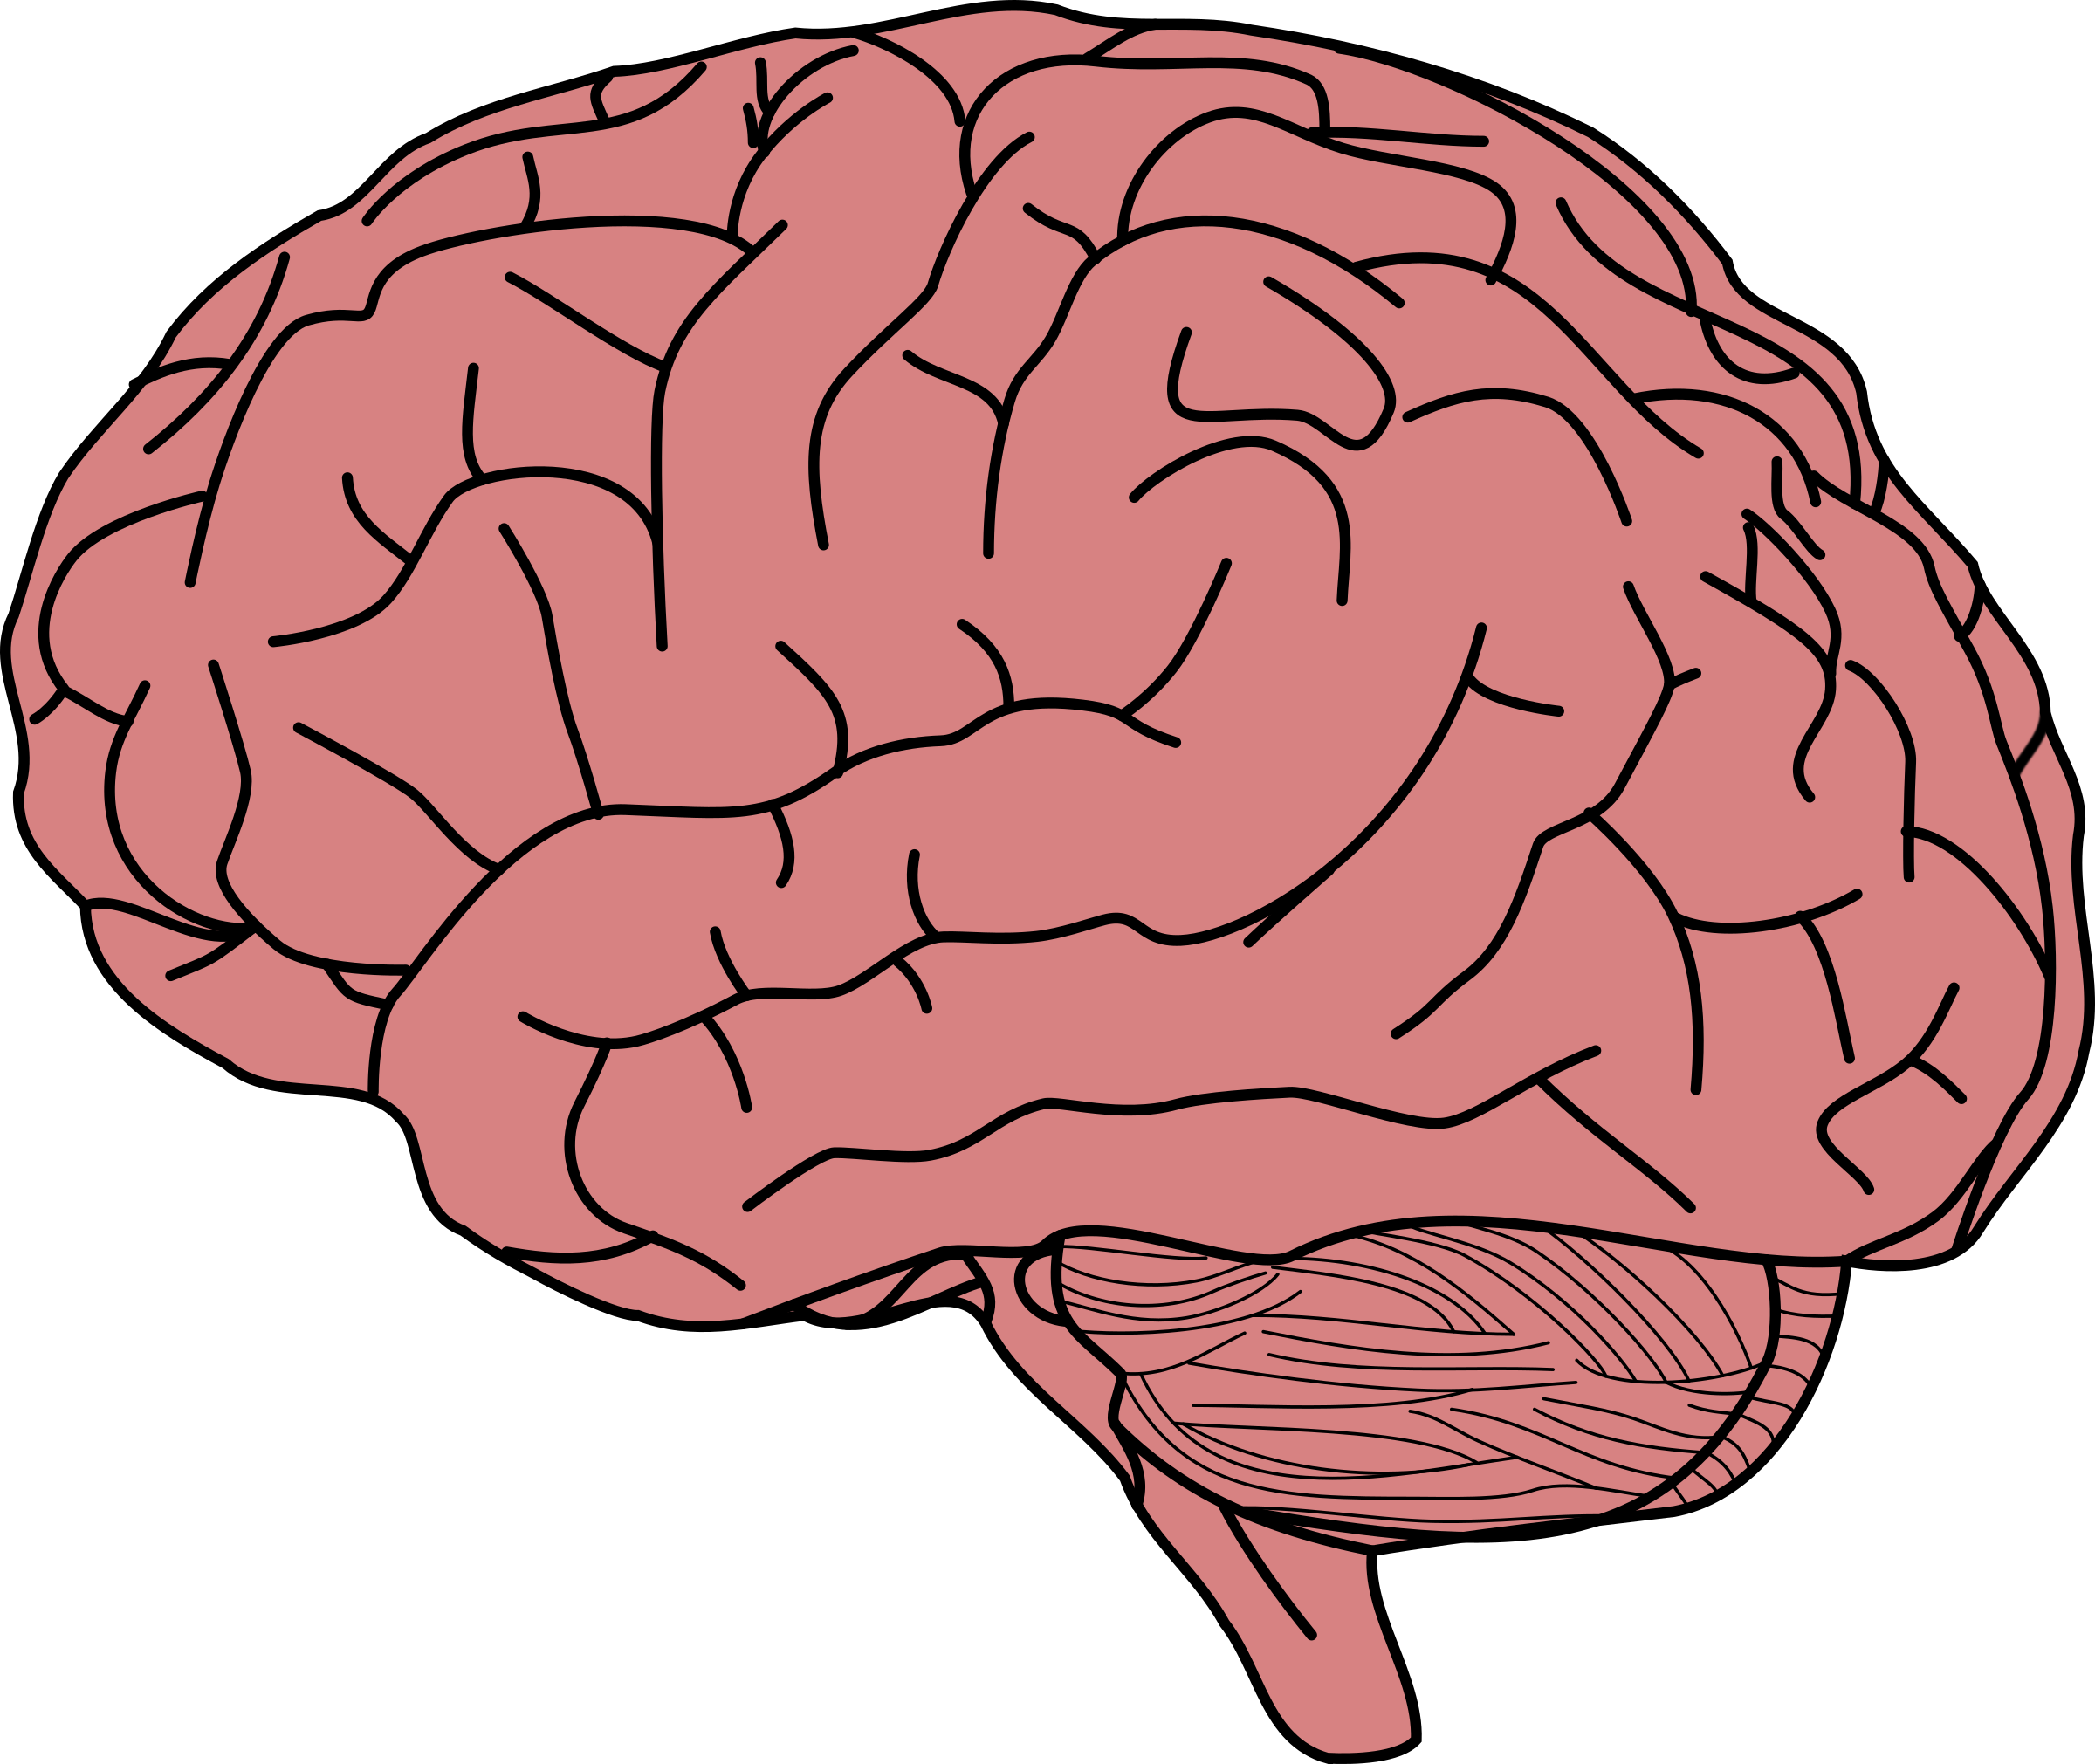 Thoughts clipart brain. Human big image png